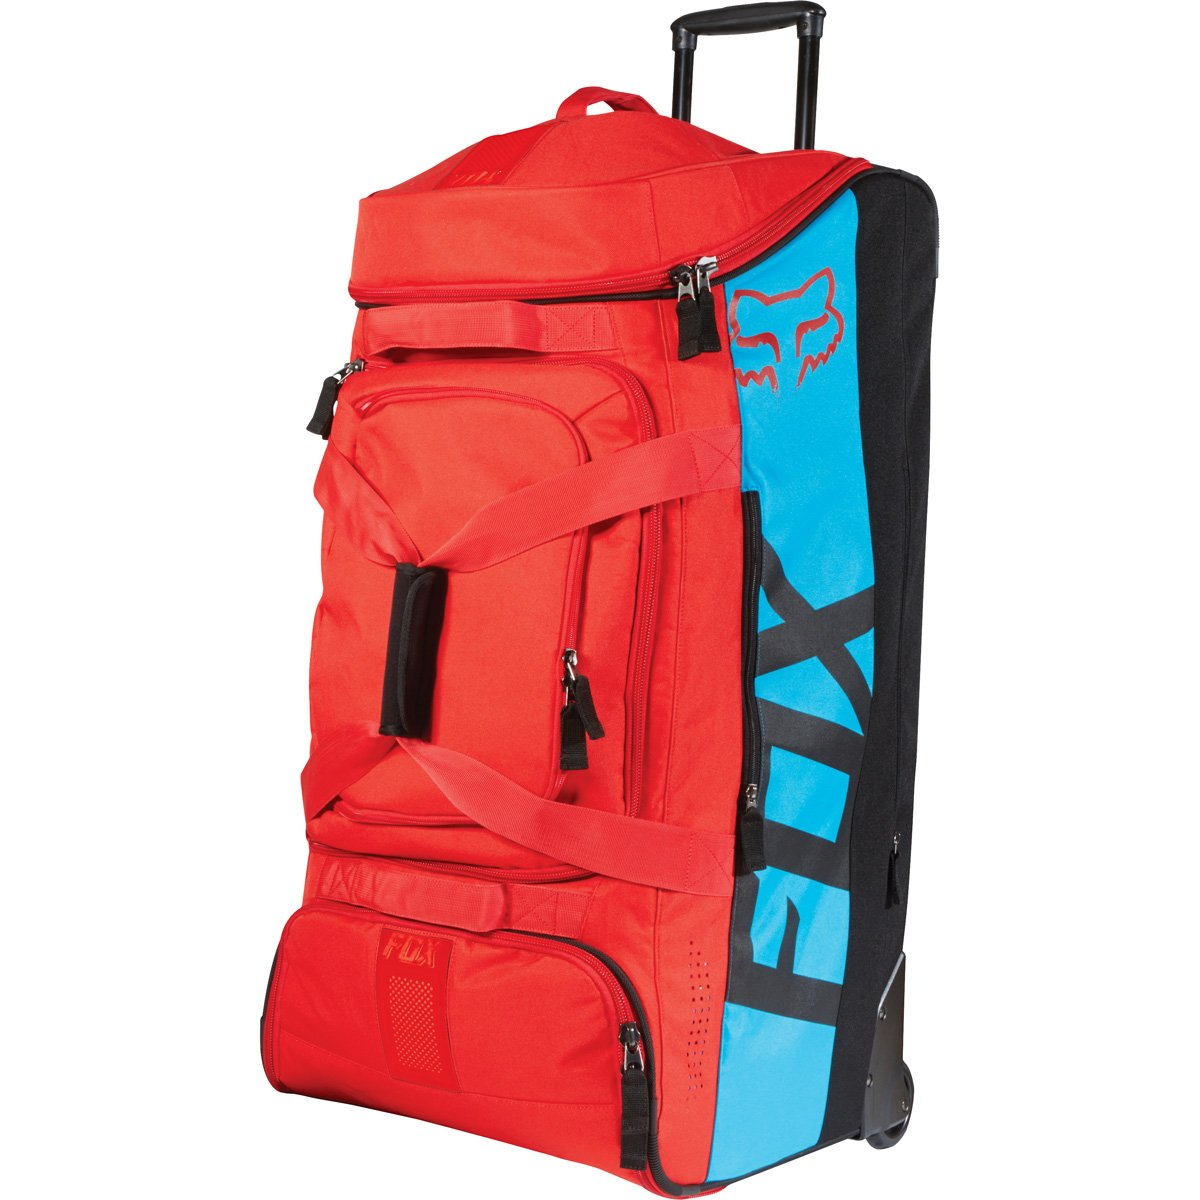 Fox Racing Shuttle Roller Print Sports Gear Bag - Blue/Red / One Size